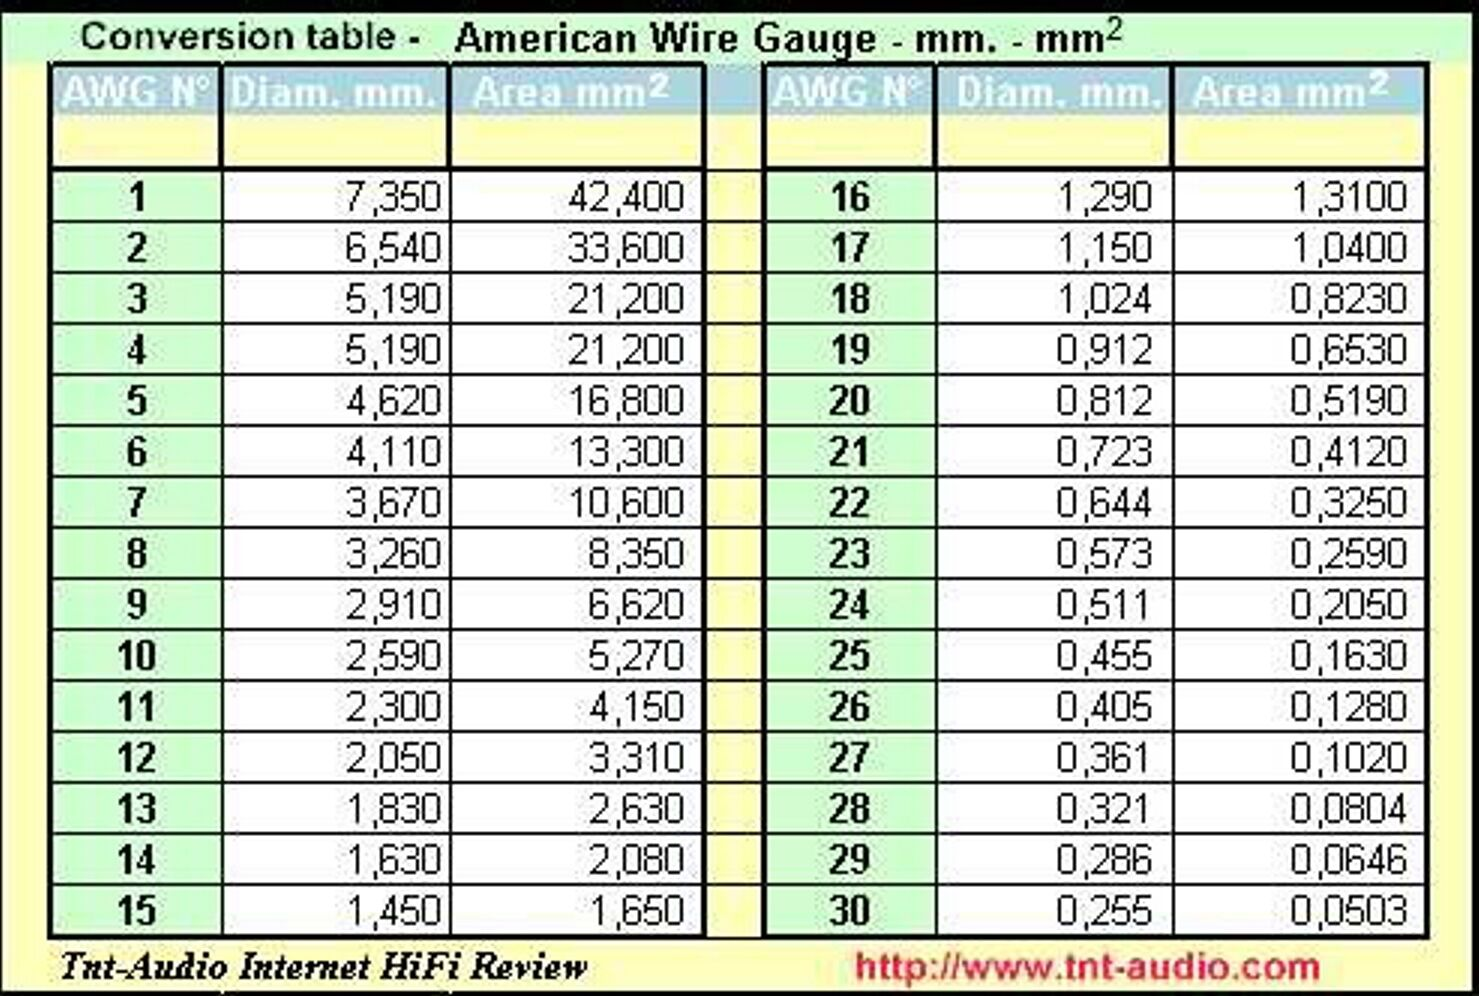 Electrical wire gauge to mm conversion chart choice image wiring wire gauge mm conversion chart images wiring table and diagram electrical wire gauge to mm conversion greentooth